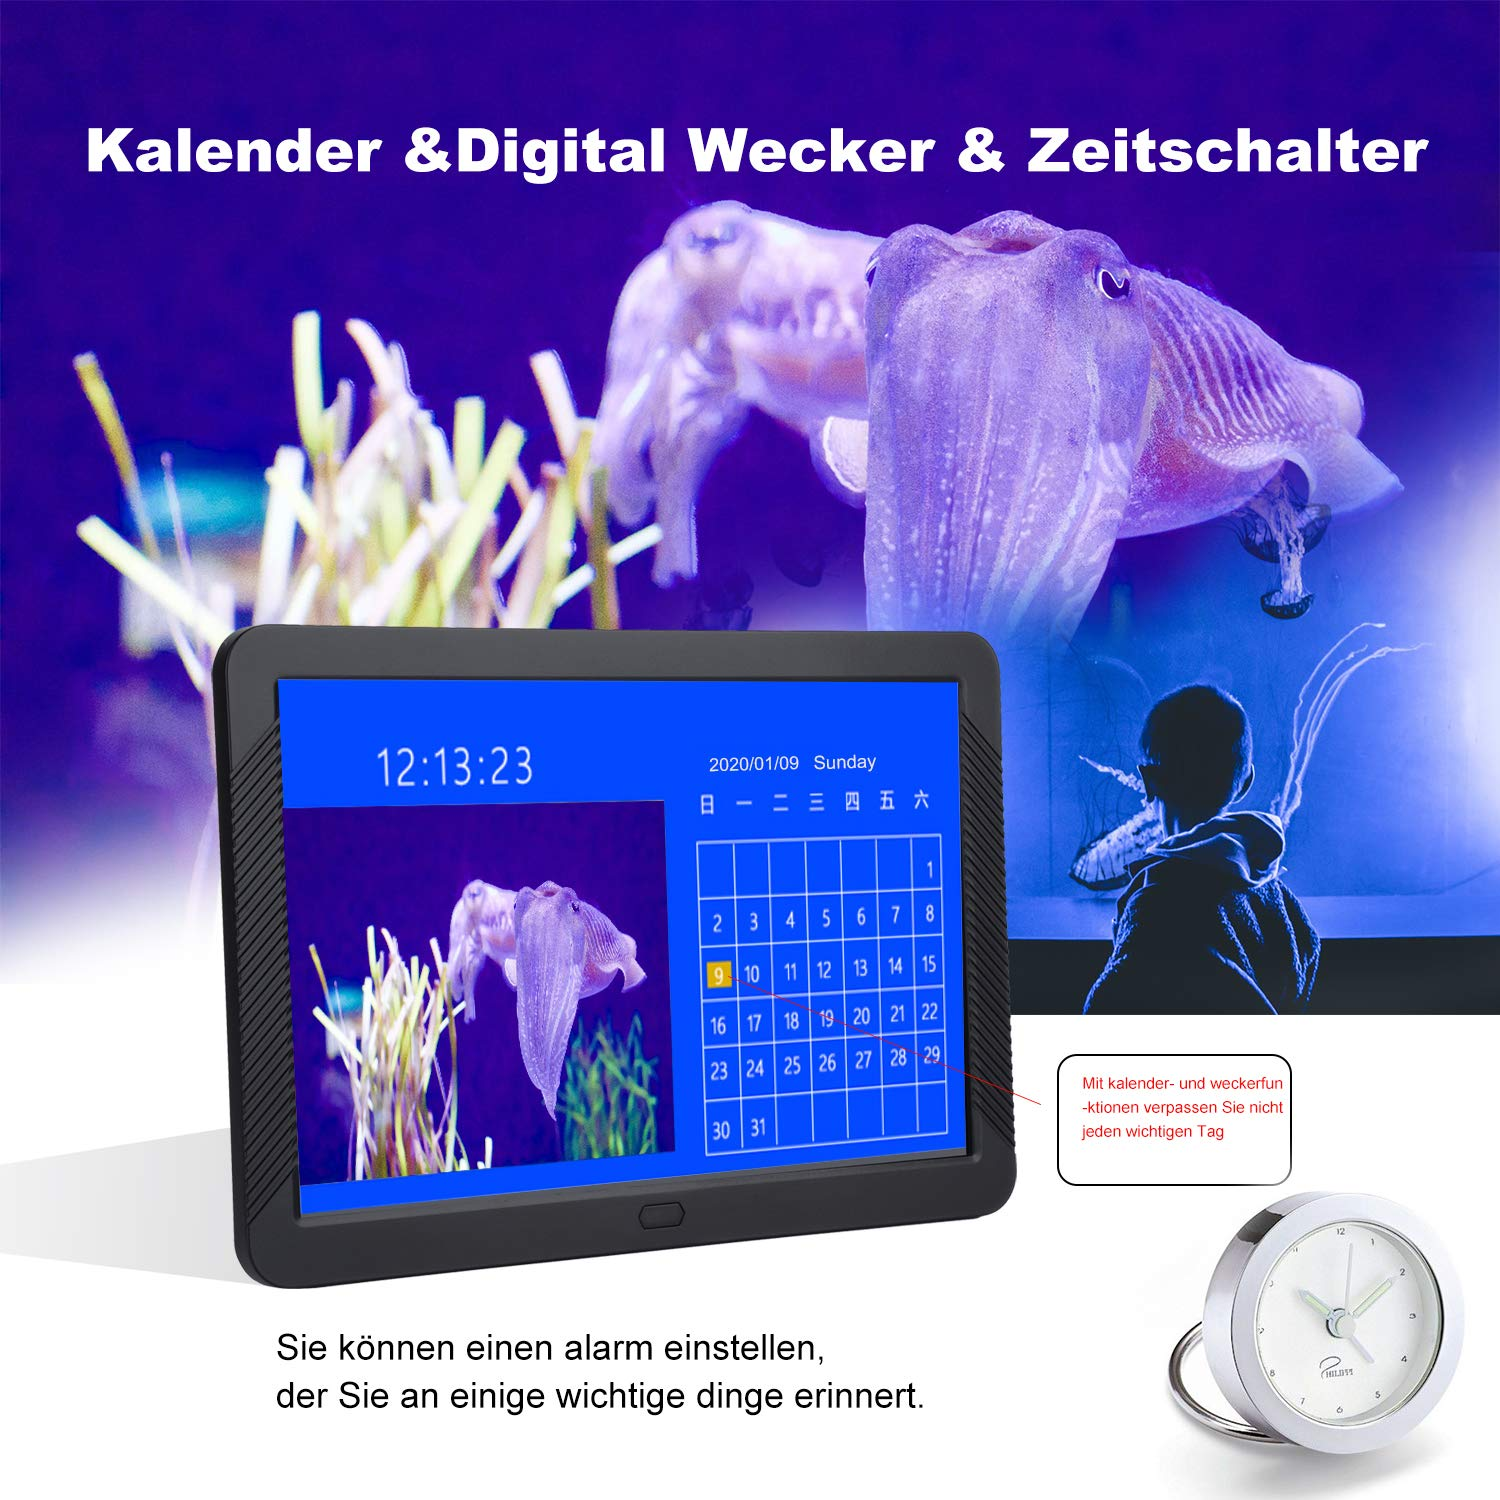 Digitaler Bilderrahmen 8 Zoll 1920 * 1080 Elektronischer Bilderrahmen Cofunkool HD IPS Display mit Foto Video Music Kalender Alarm Auto on/Off Timer unterstützt USB SD-Karte IR-Fernbedienung(Schwarz)